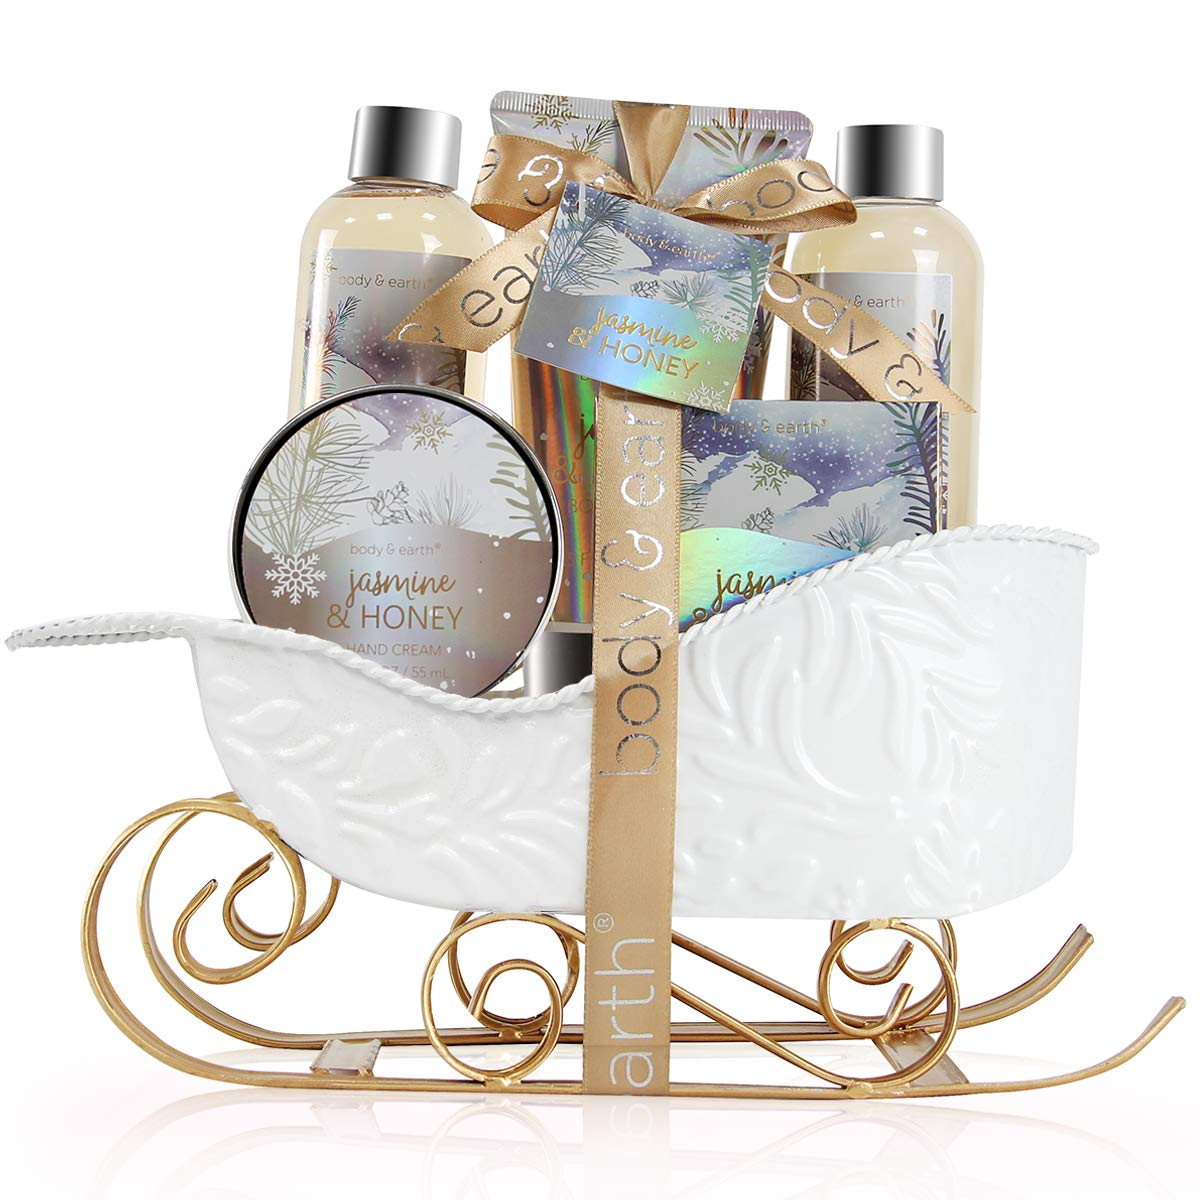 Bath and Body Set - Body & Earth Women Gifts Spa Set with Jasmine & Honey Scent, Includes Bubble Bath, Shower Gel, Soap, Body Lotion and Hand Cream. Perfect Gift Basket for Christmas